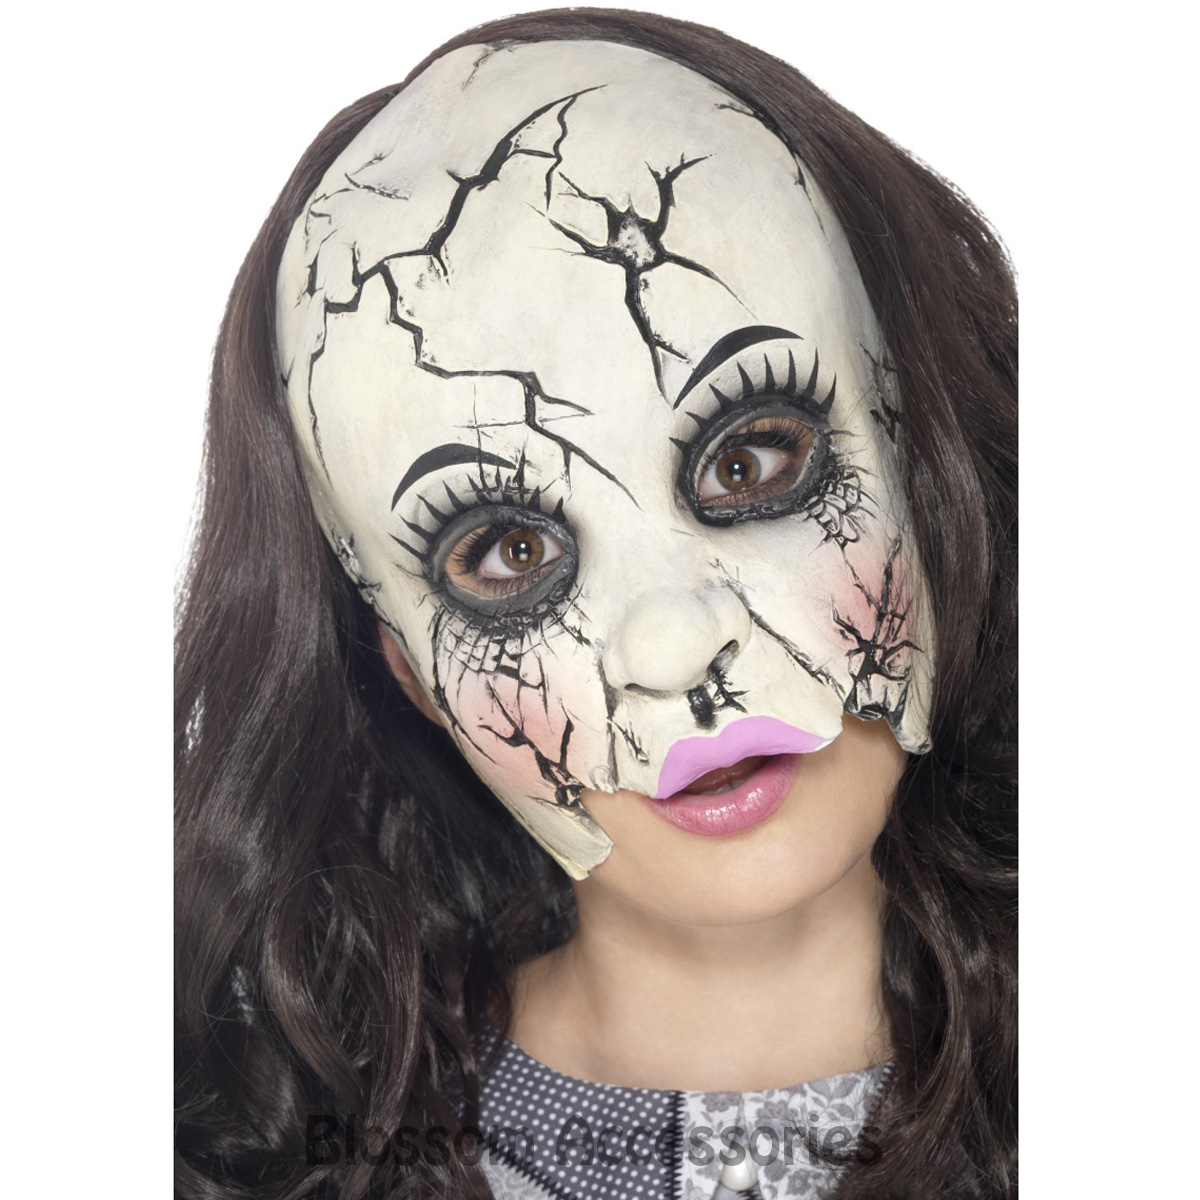 a938 damaged broken doll adult chinless costume halloween horror